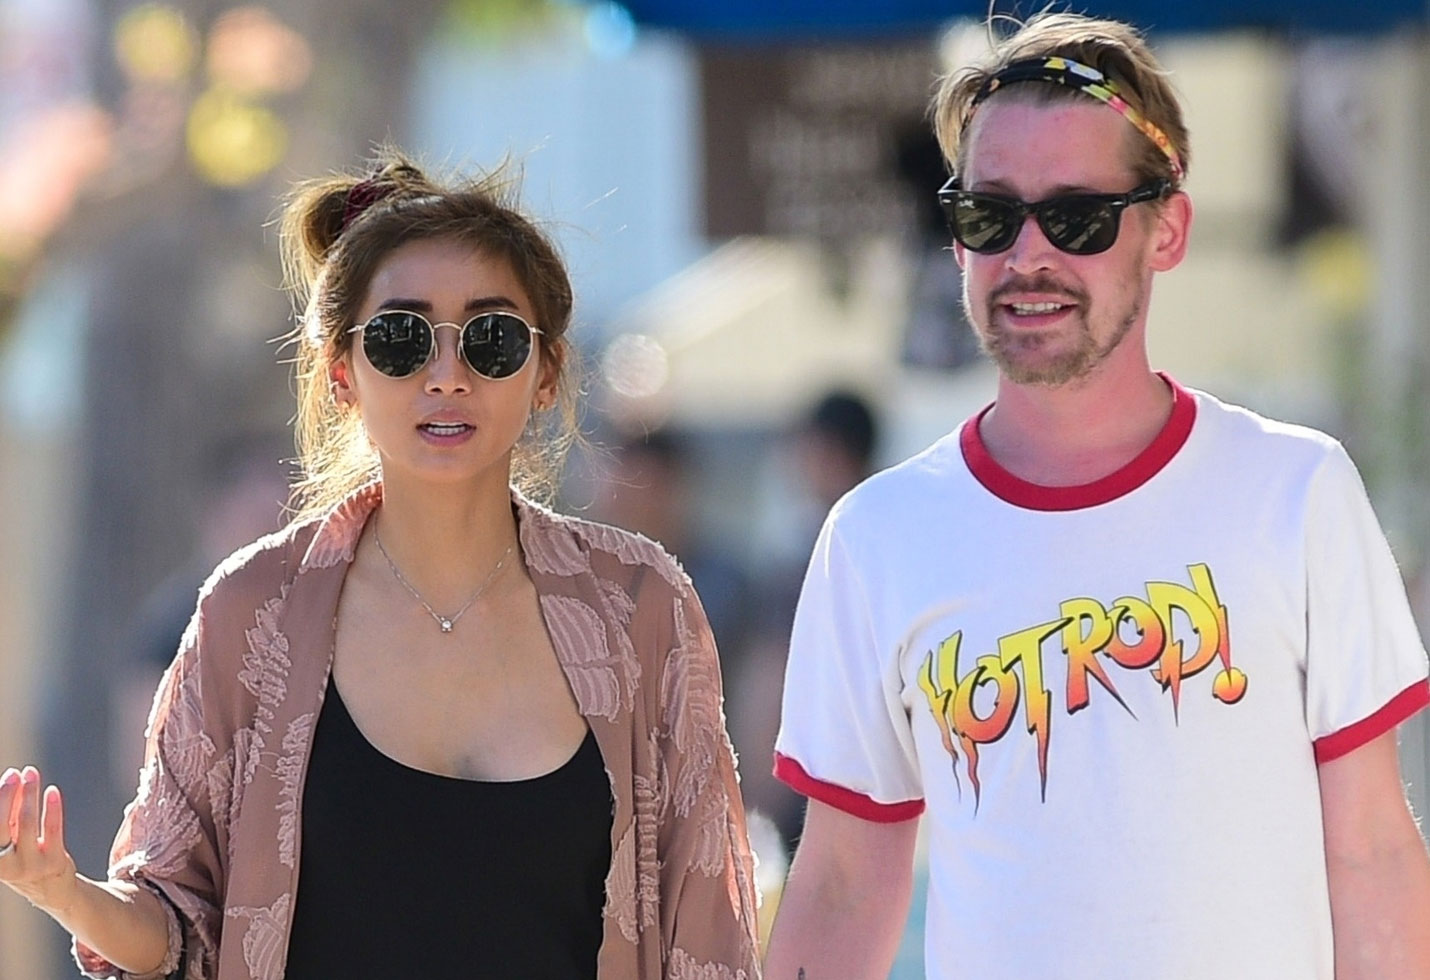 Macaulay Culkin and girlfriend Brenda Song